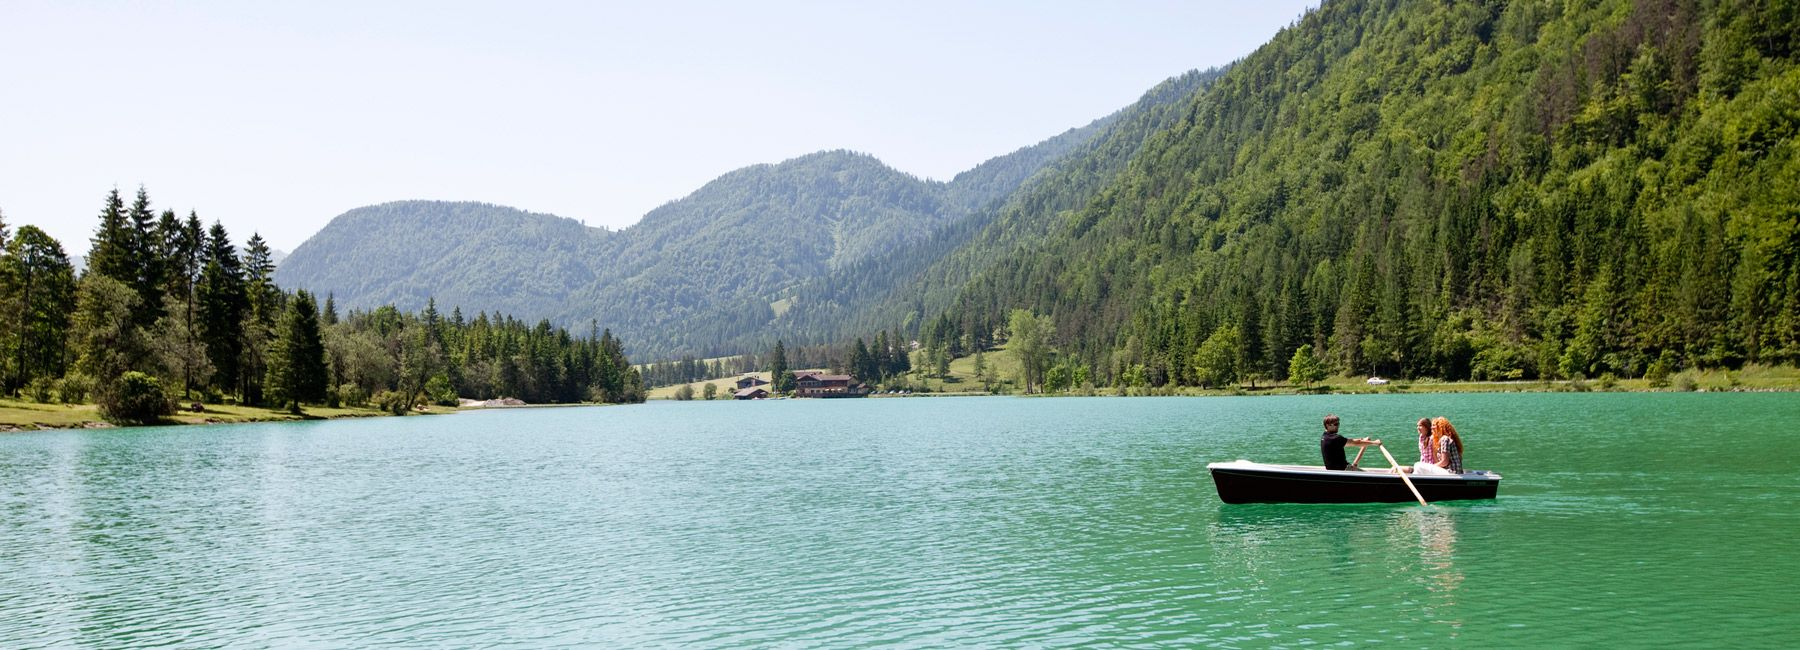 Pillersee im Sommer